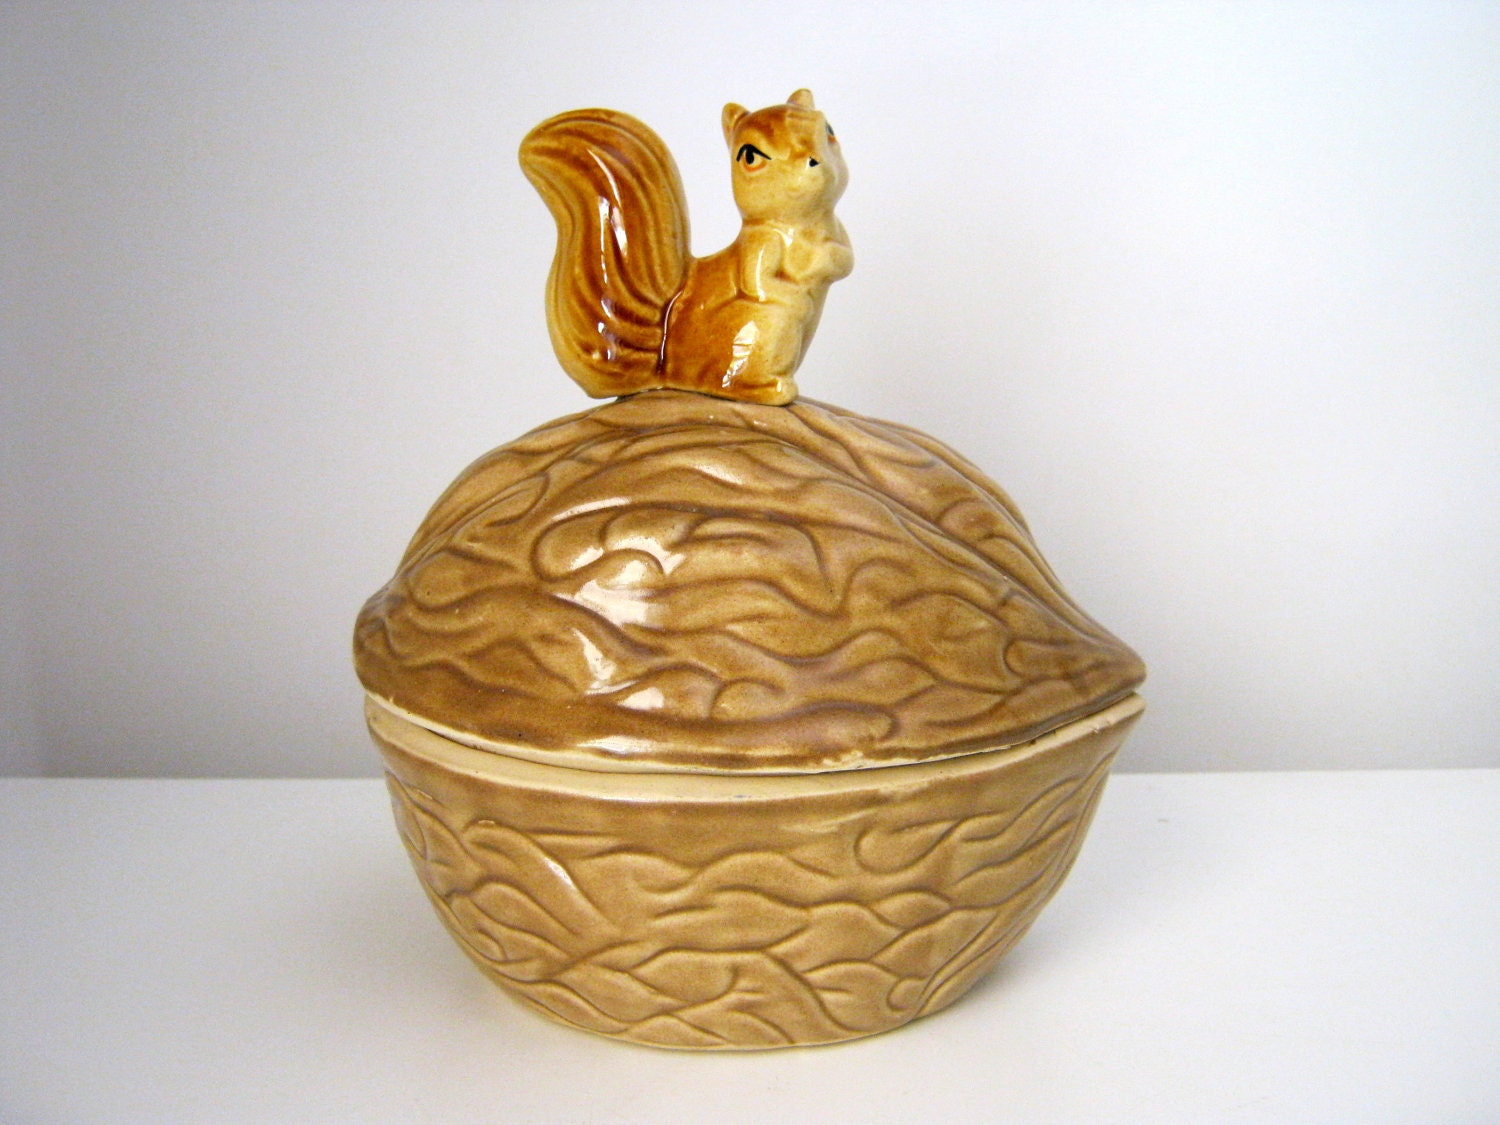 Vintage Ceramic Squirrel and Nut Jar - KitschVillage